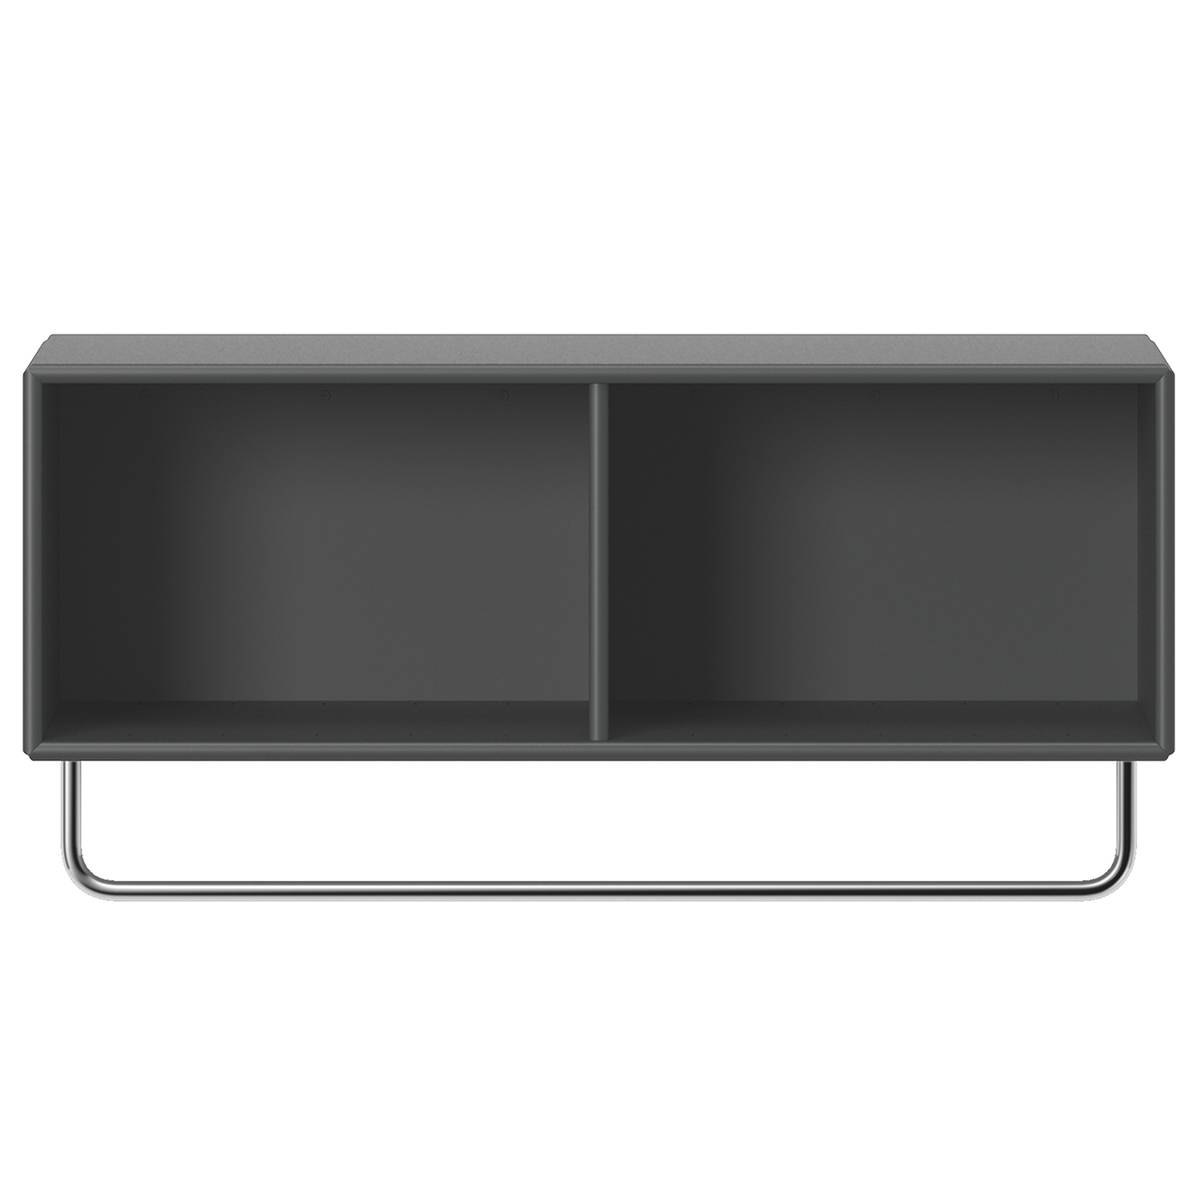 Montana Furniture Coat hat shelf with clothes rack, 04 Antracite